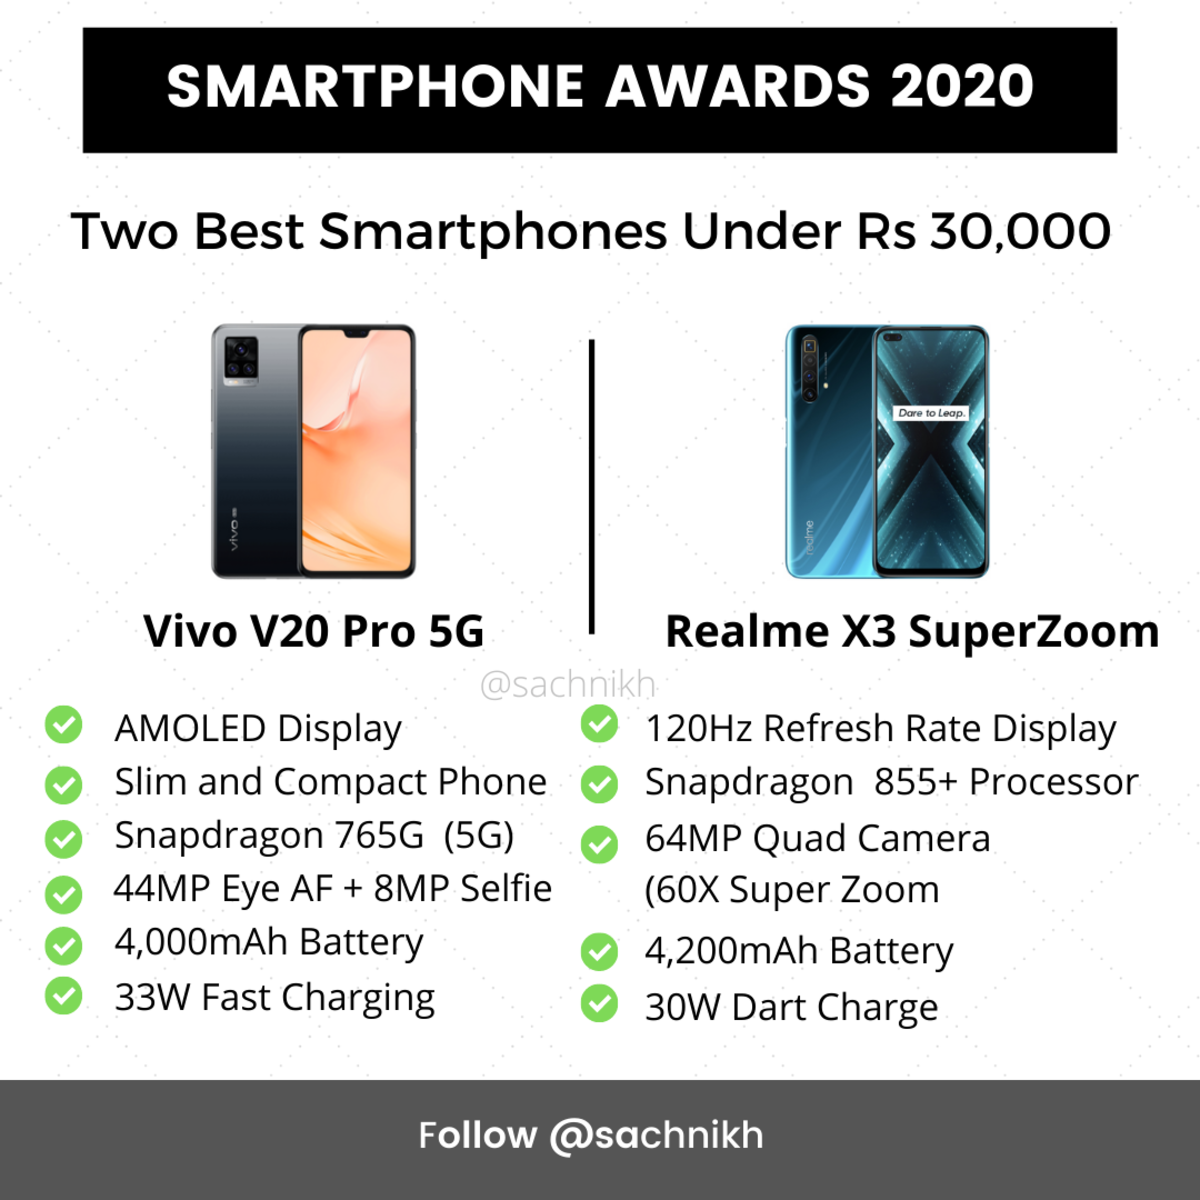 Vivo V20 Pro 5G and Realme X3 SuperZoom